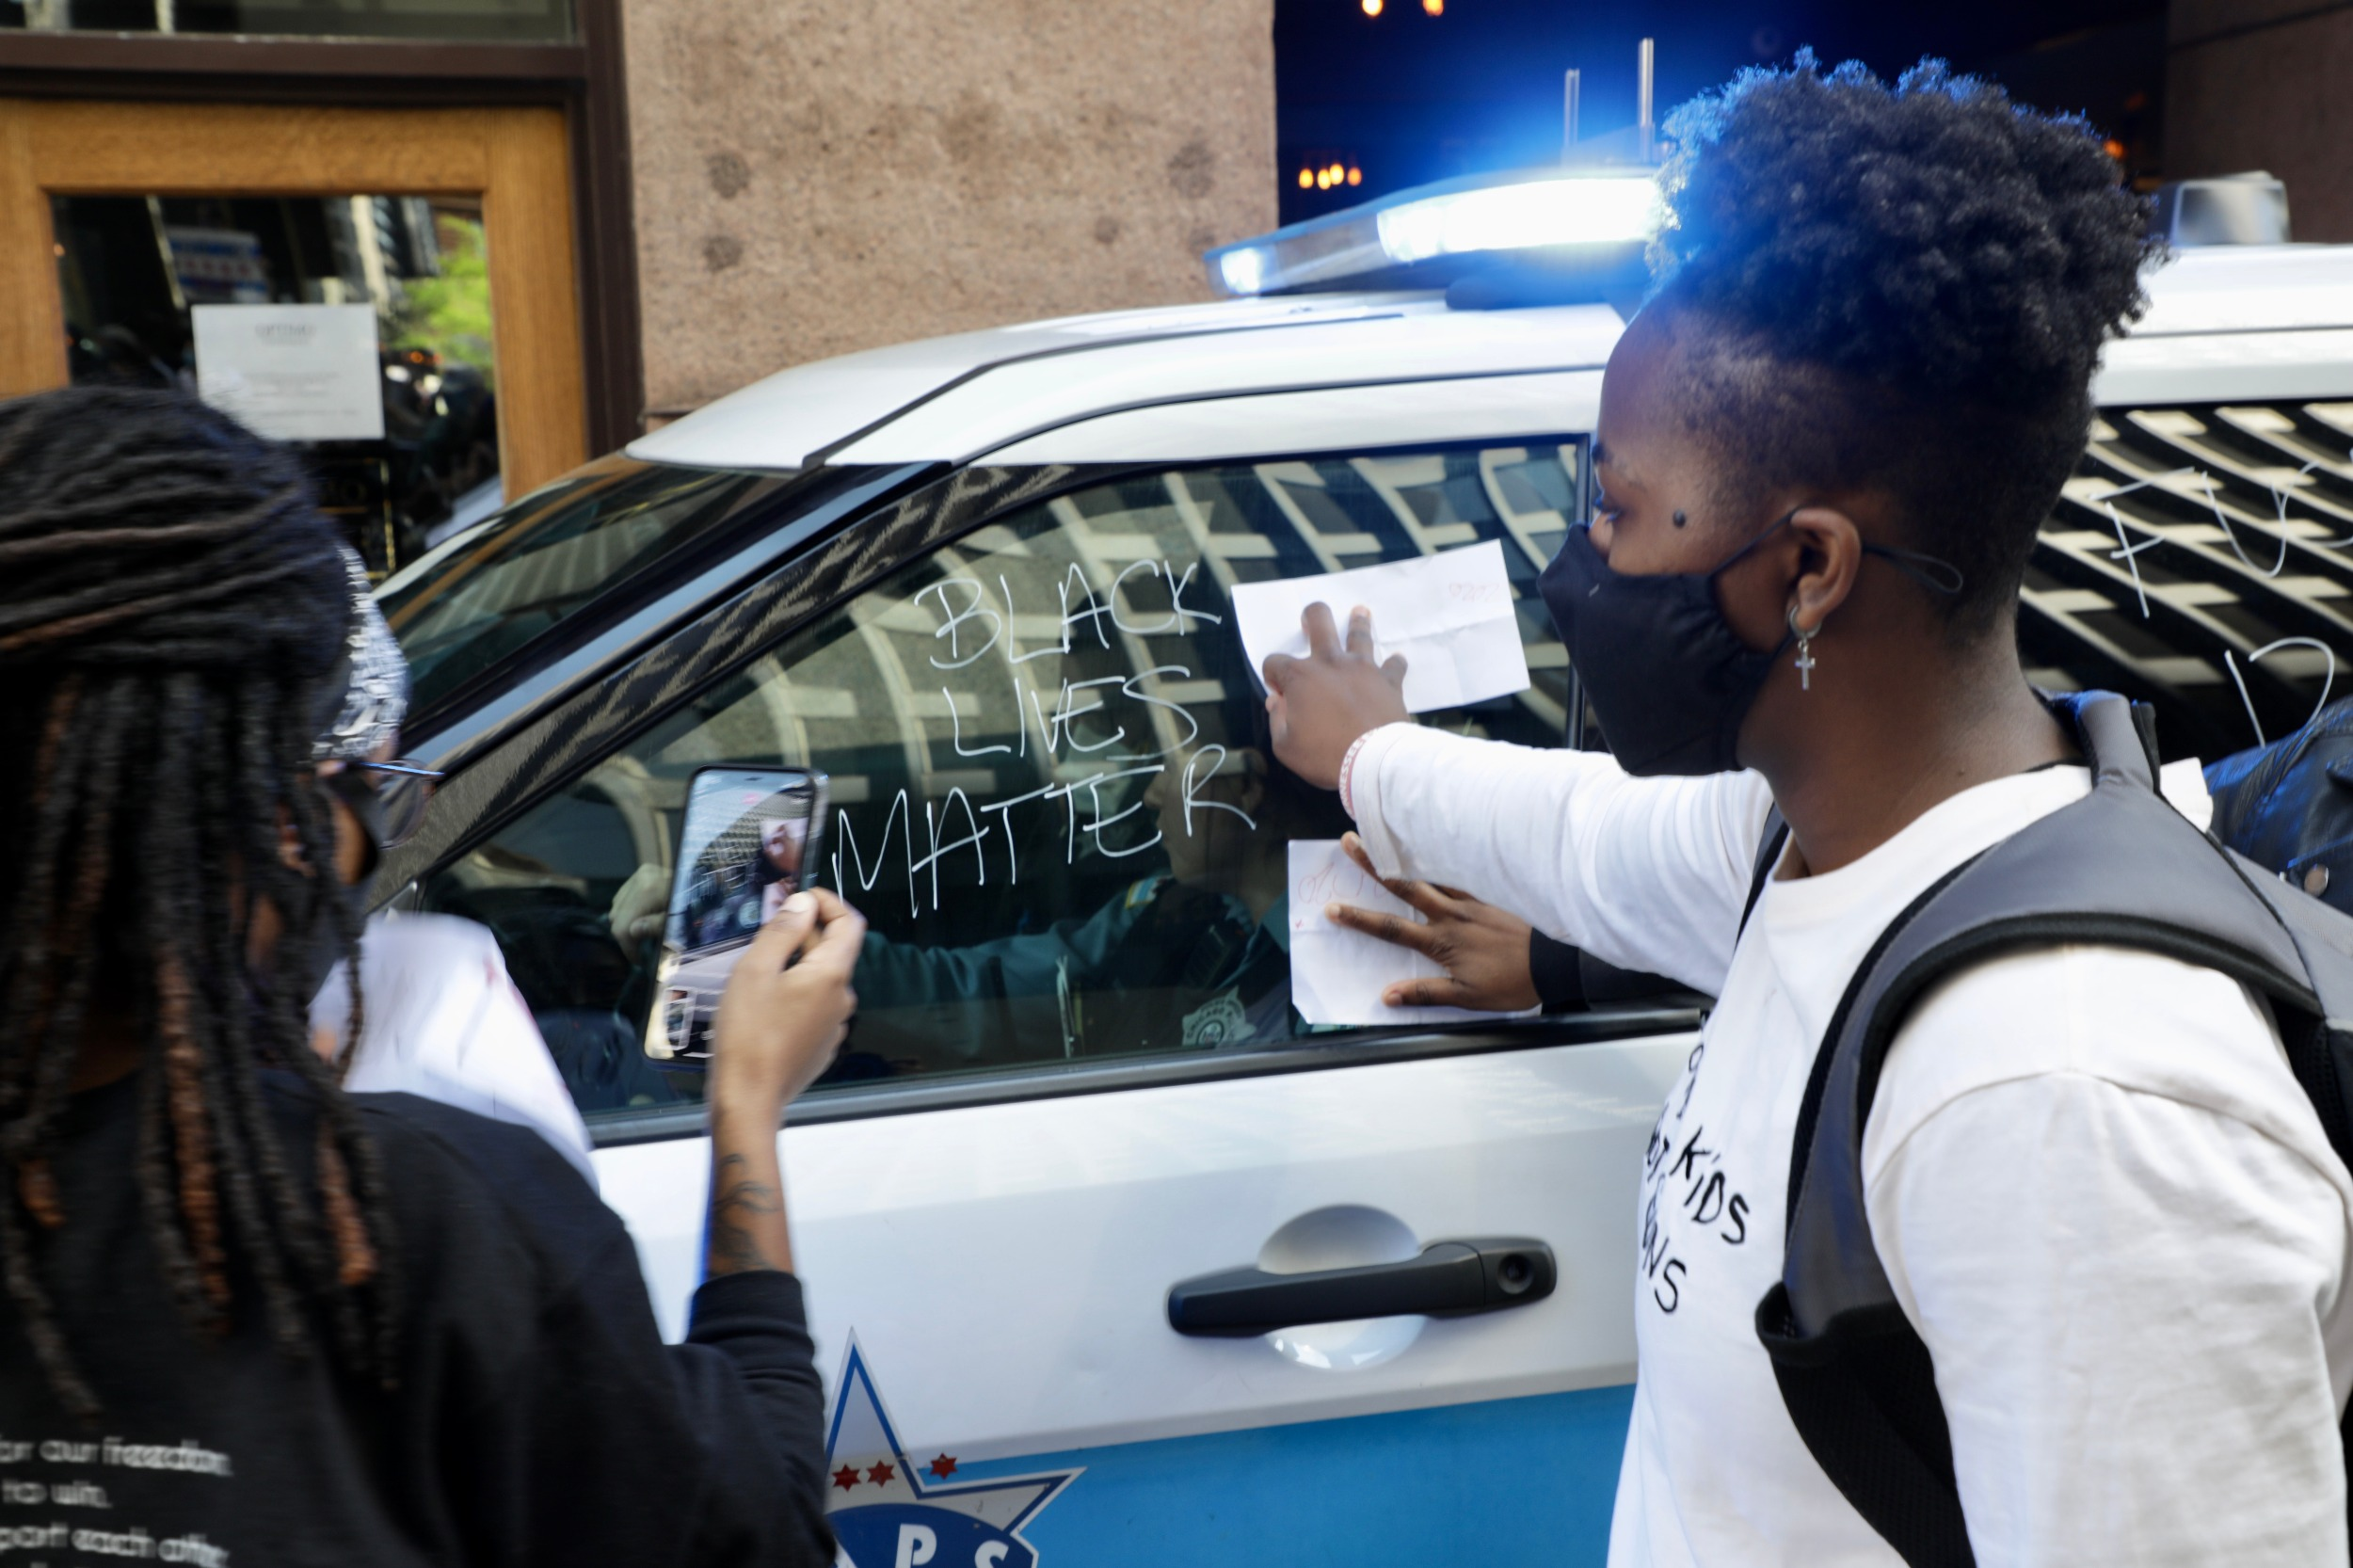 People up on cop car